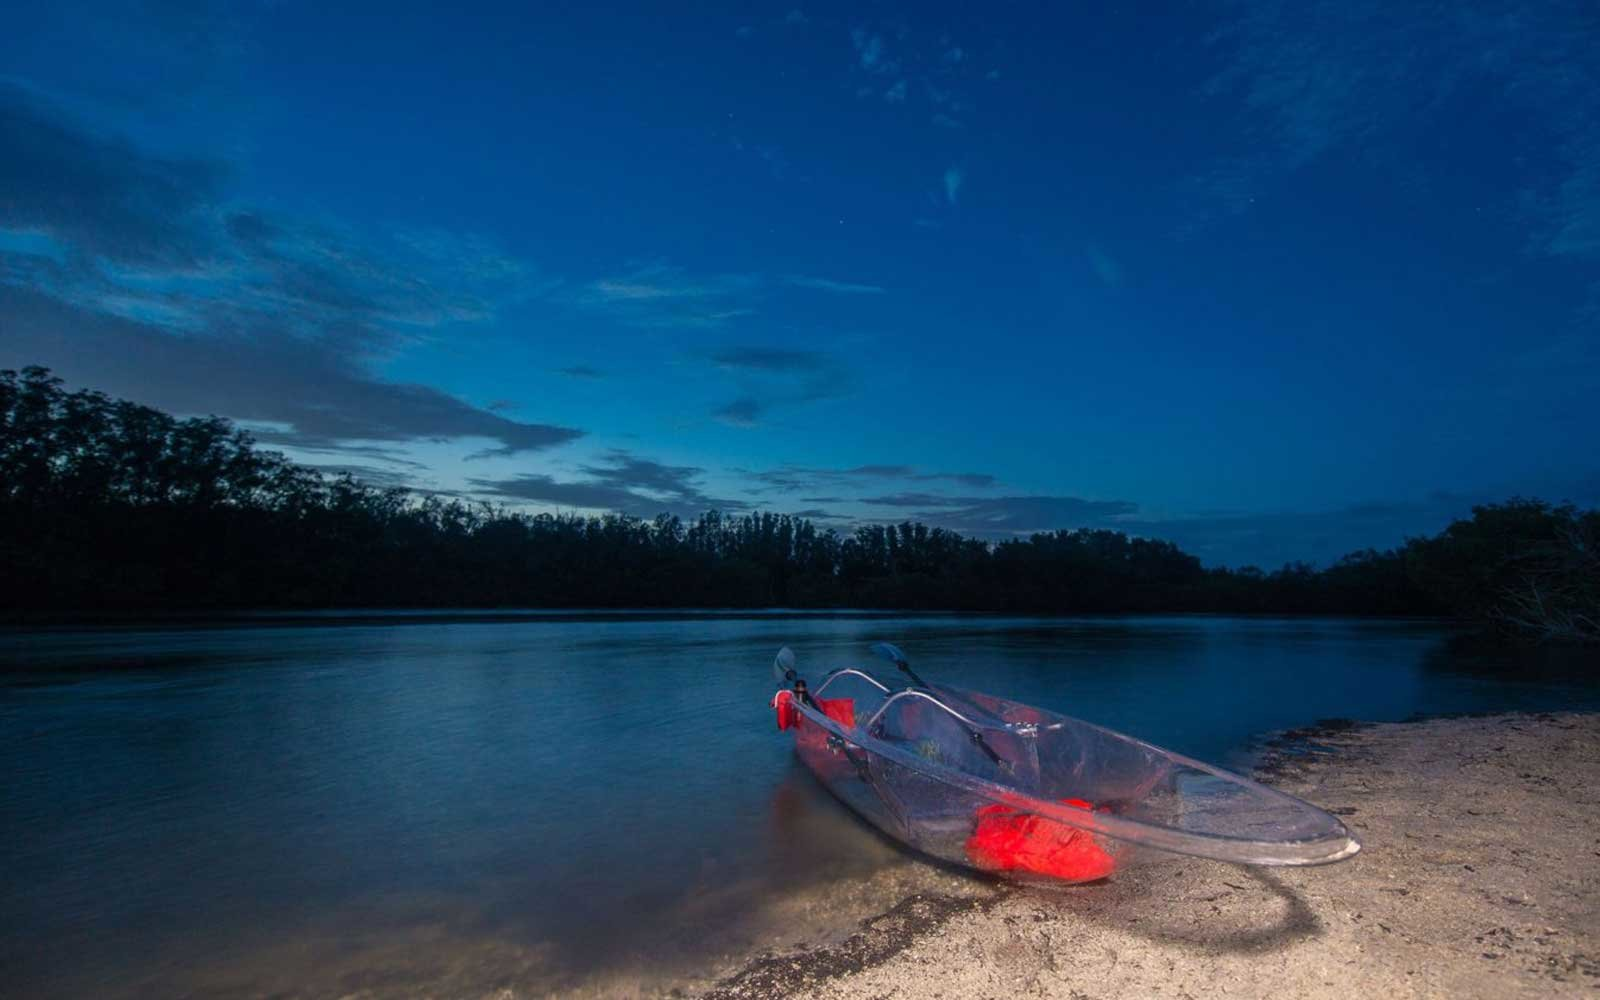 You Can Paddle Through Florida's Bioluminescent Waters in a See-through Kayak